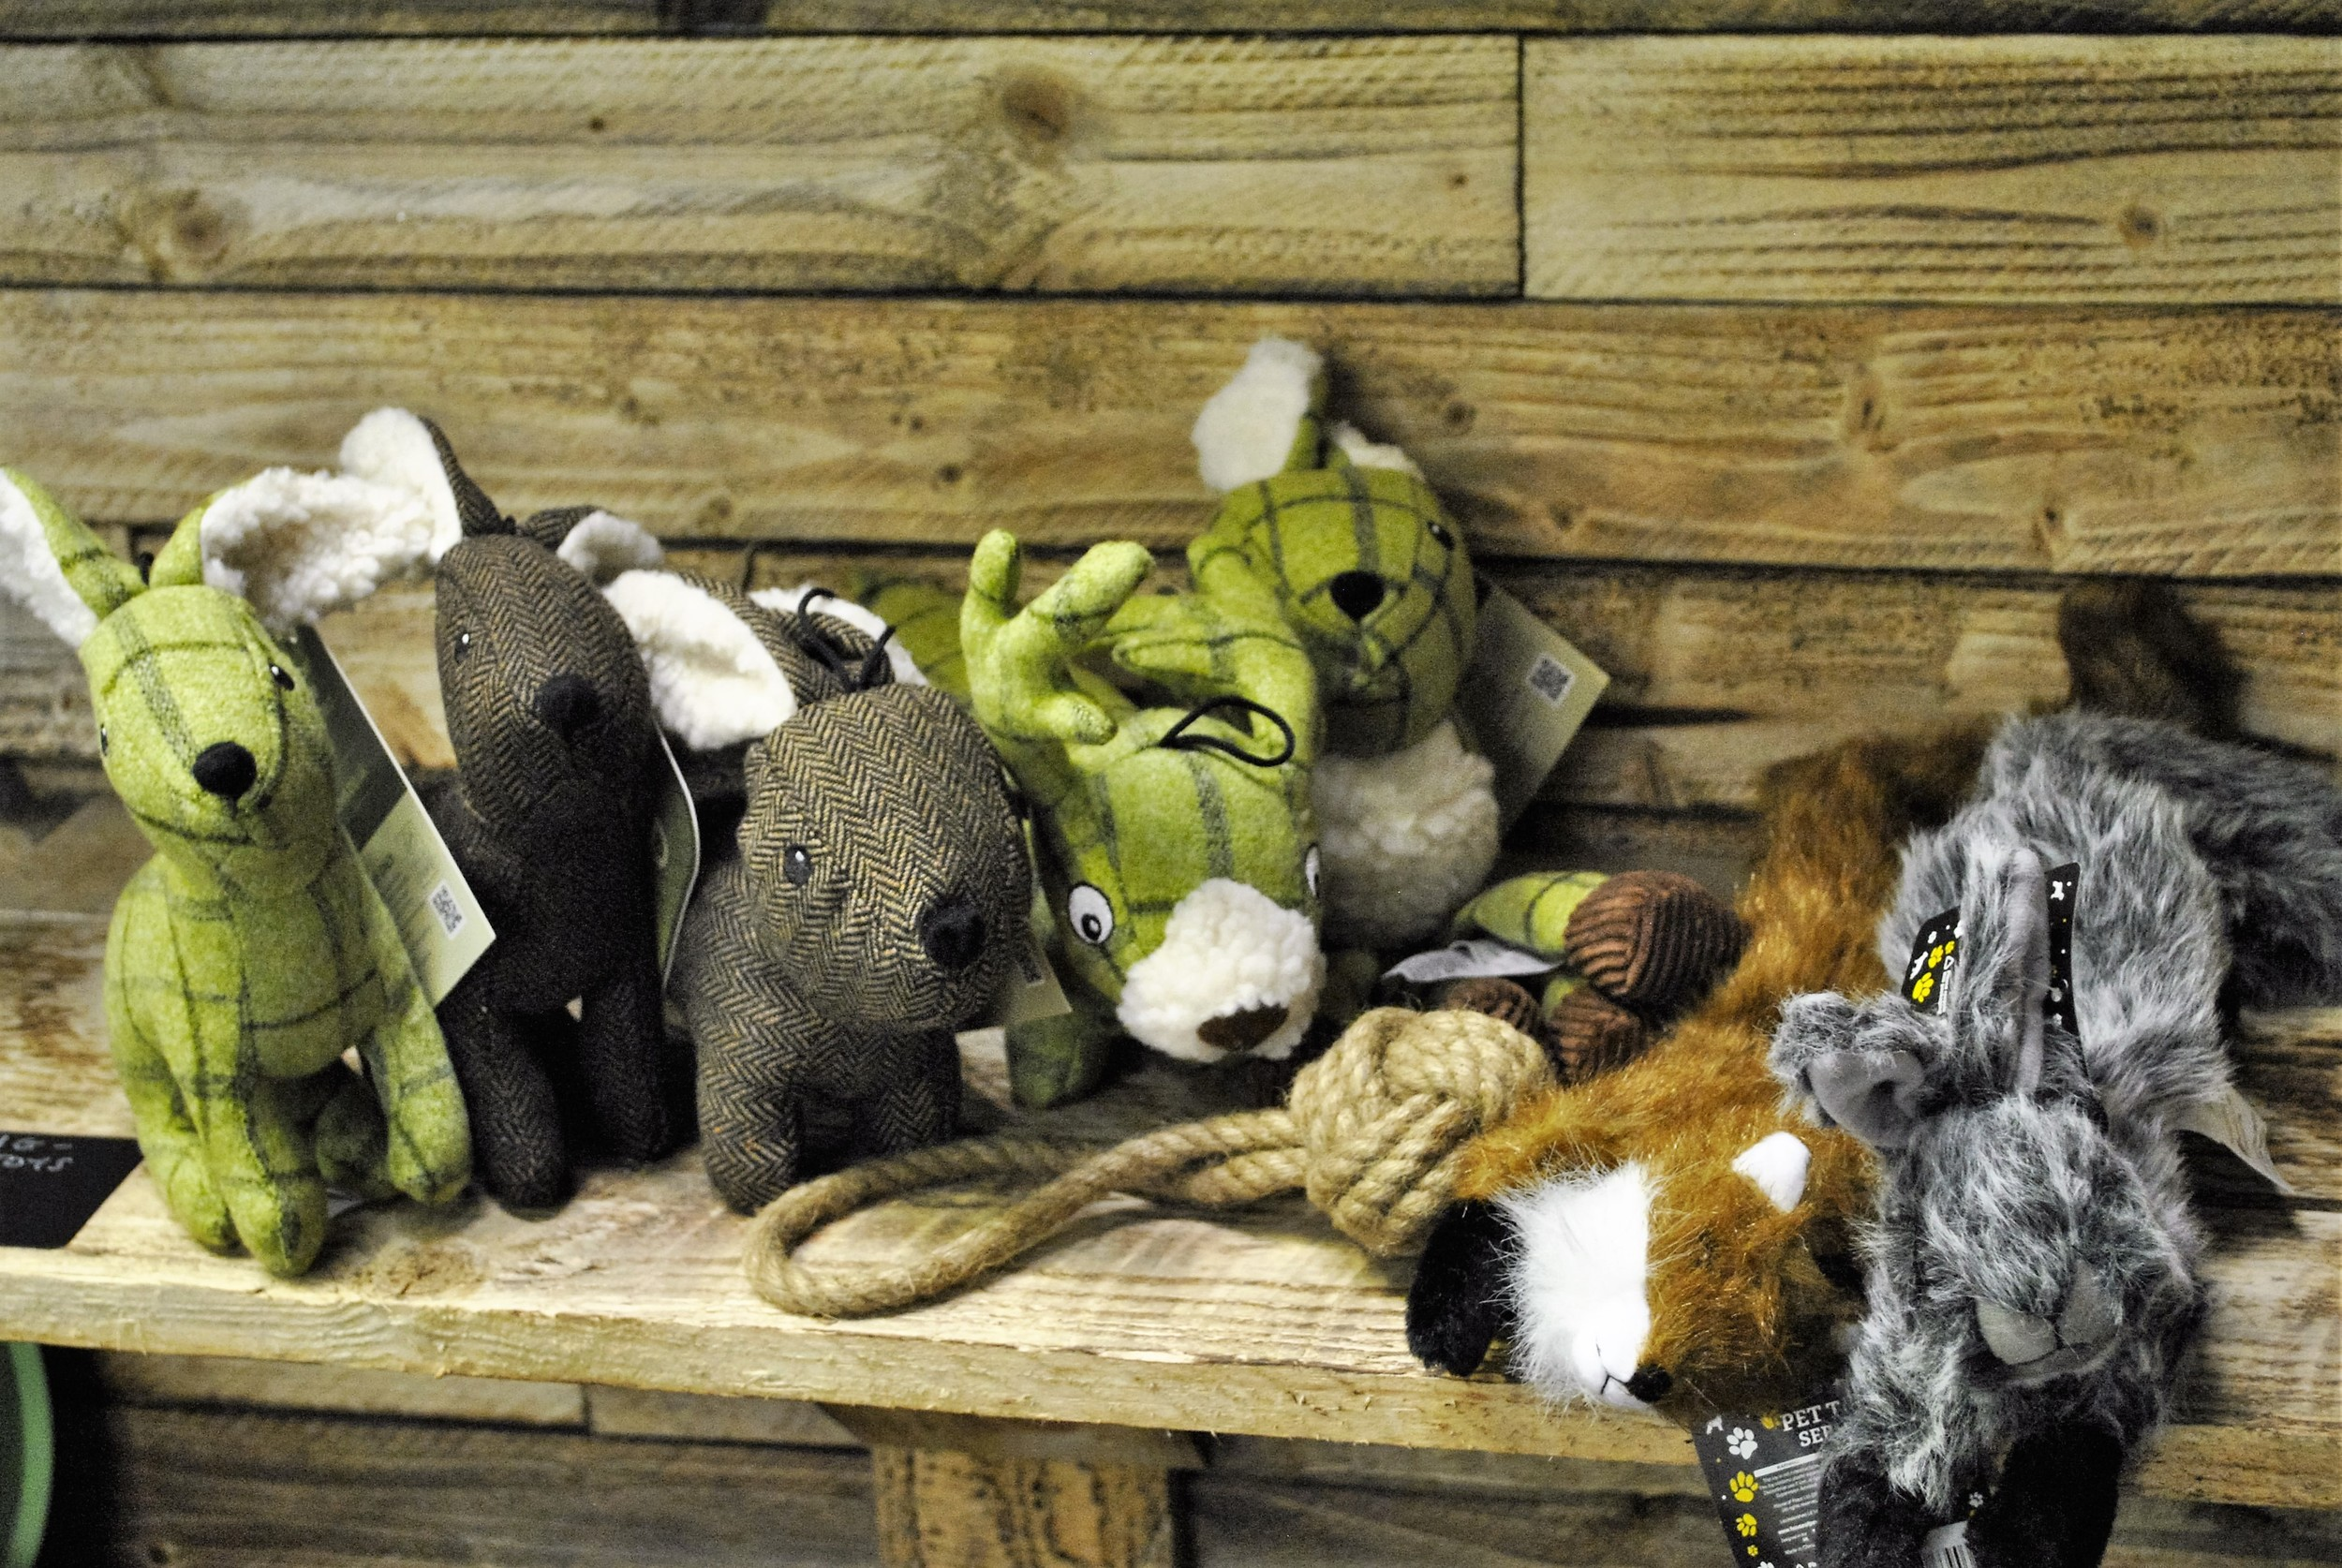 Dog toys for sale at Ginger&Browns pet shop in Northwich, Chester near Chester, Winsford, Frodsham. Shop in store or buy online.